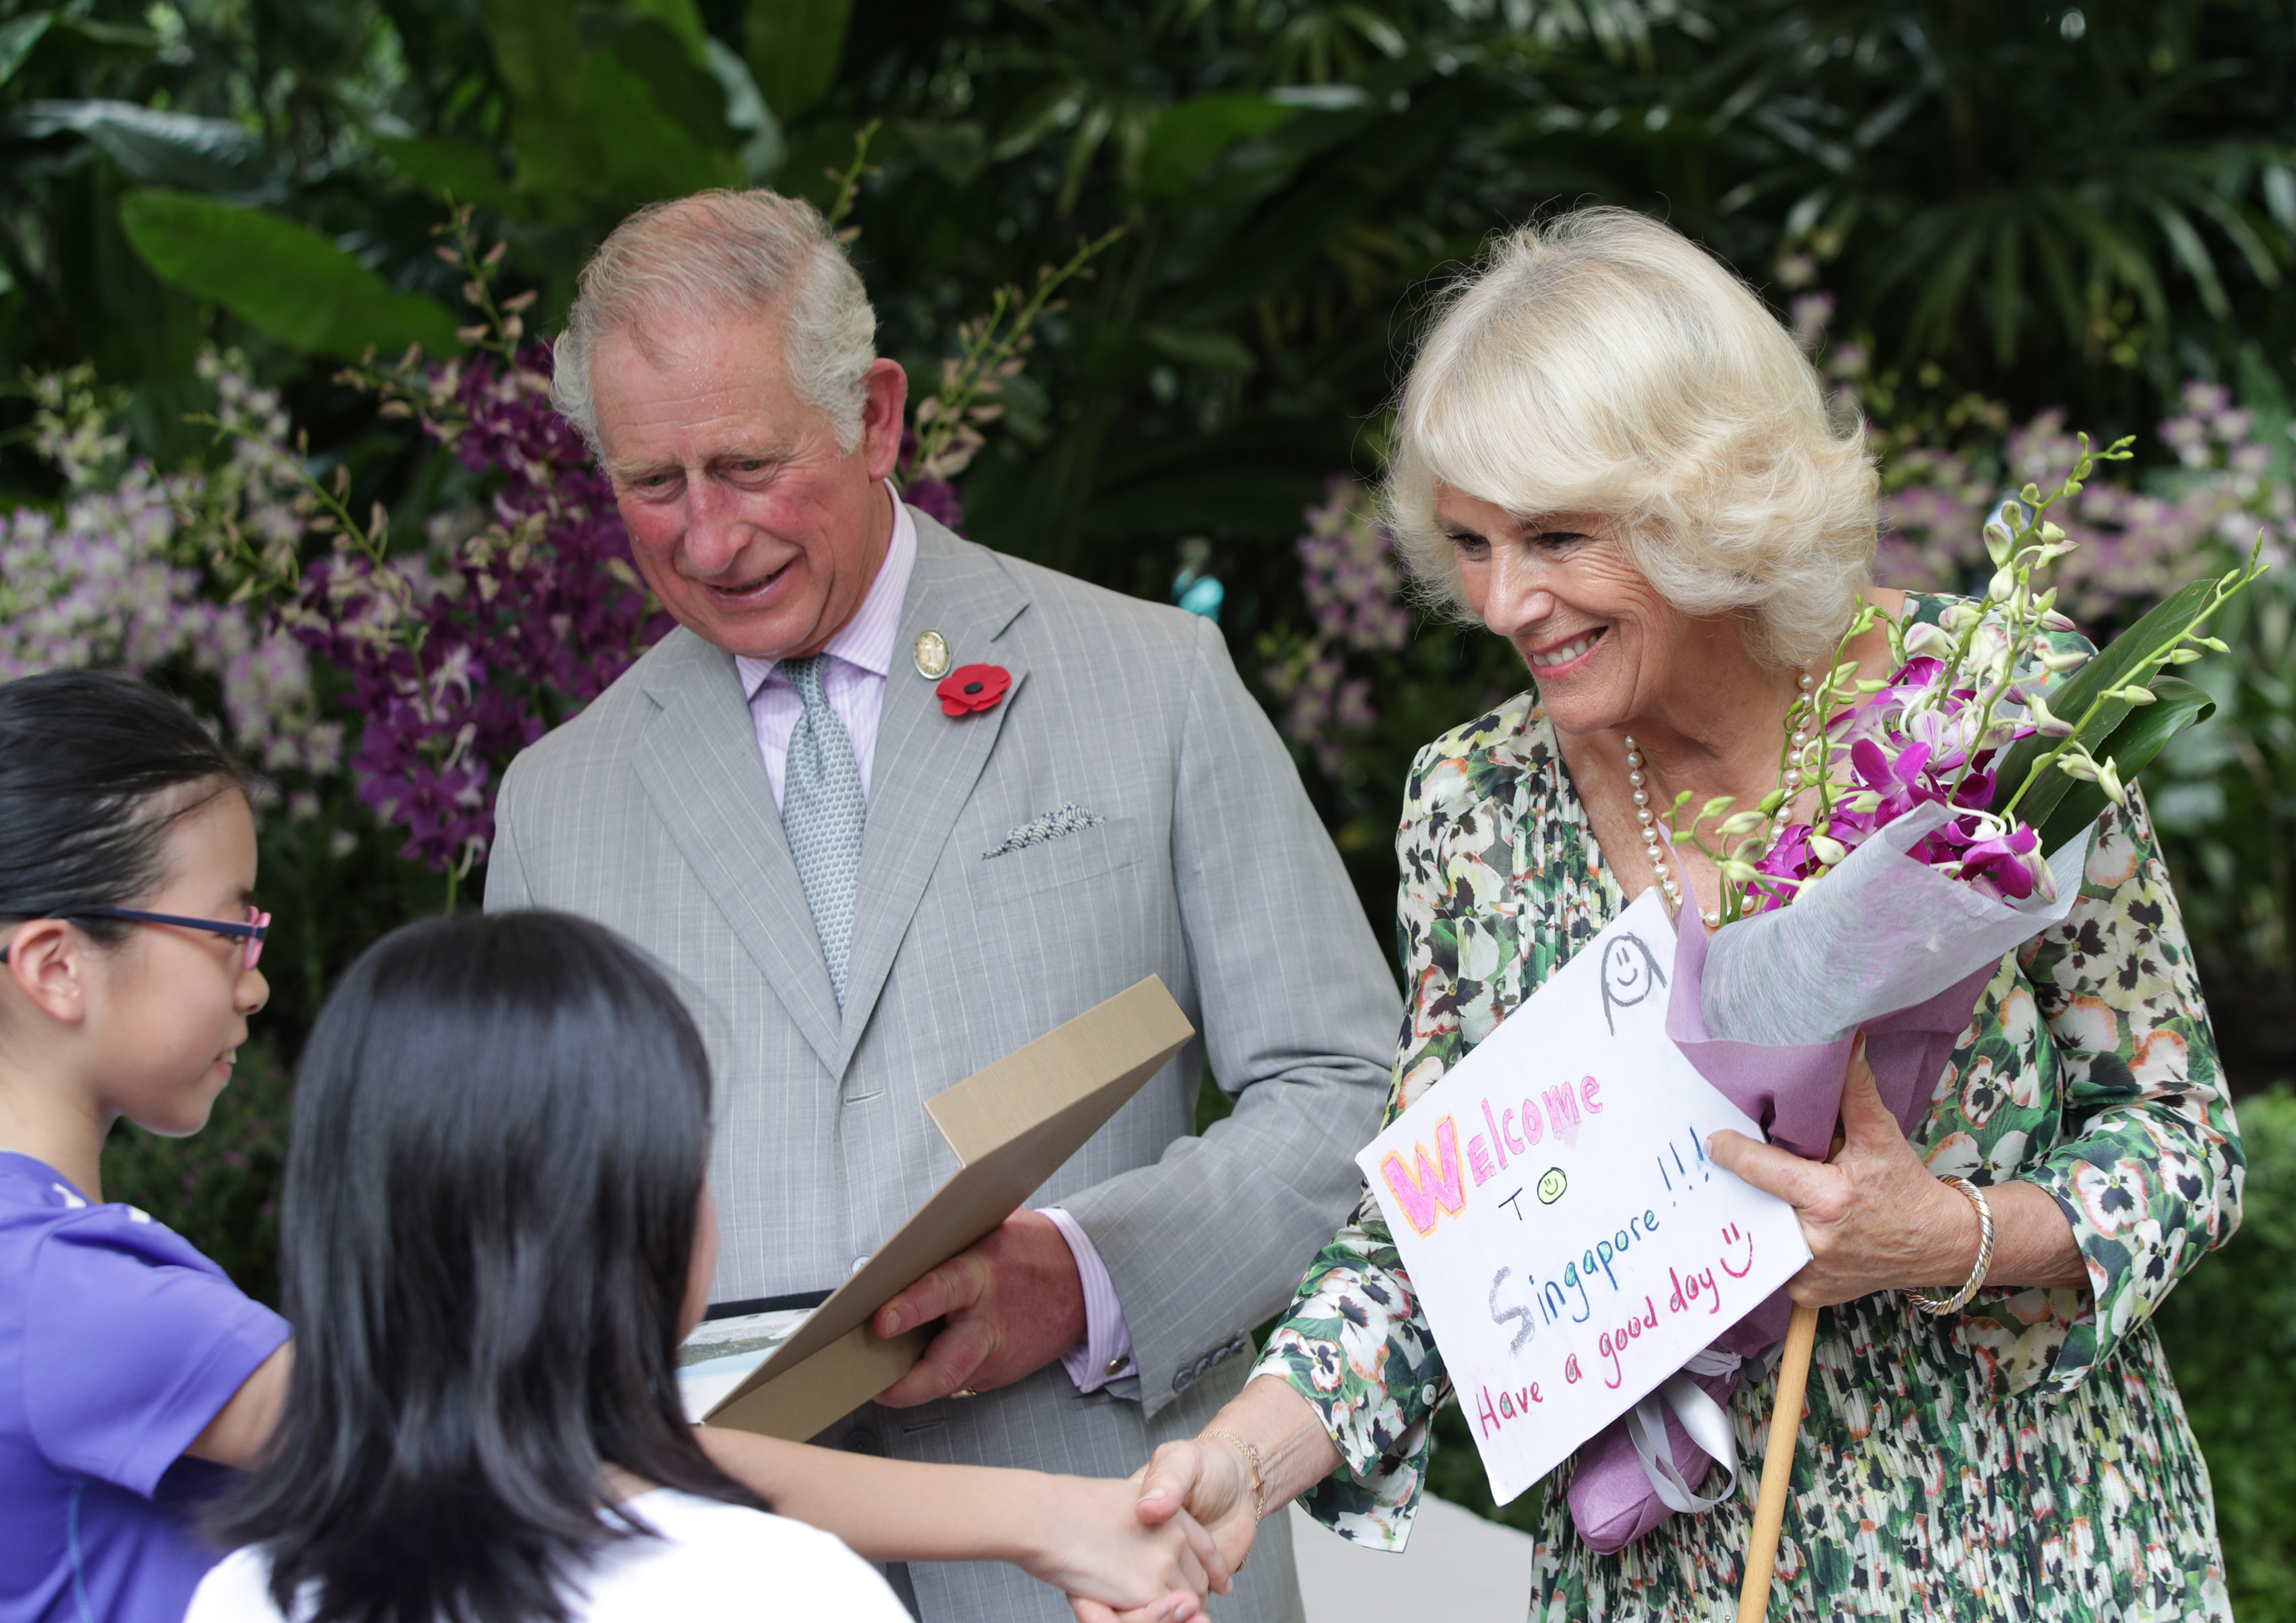 The Prince of Wales and The Duchess of Cornwall in Singapore